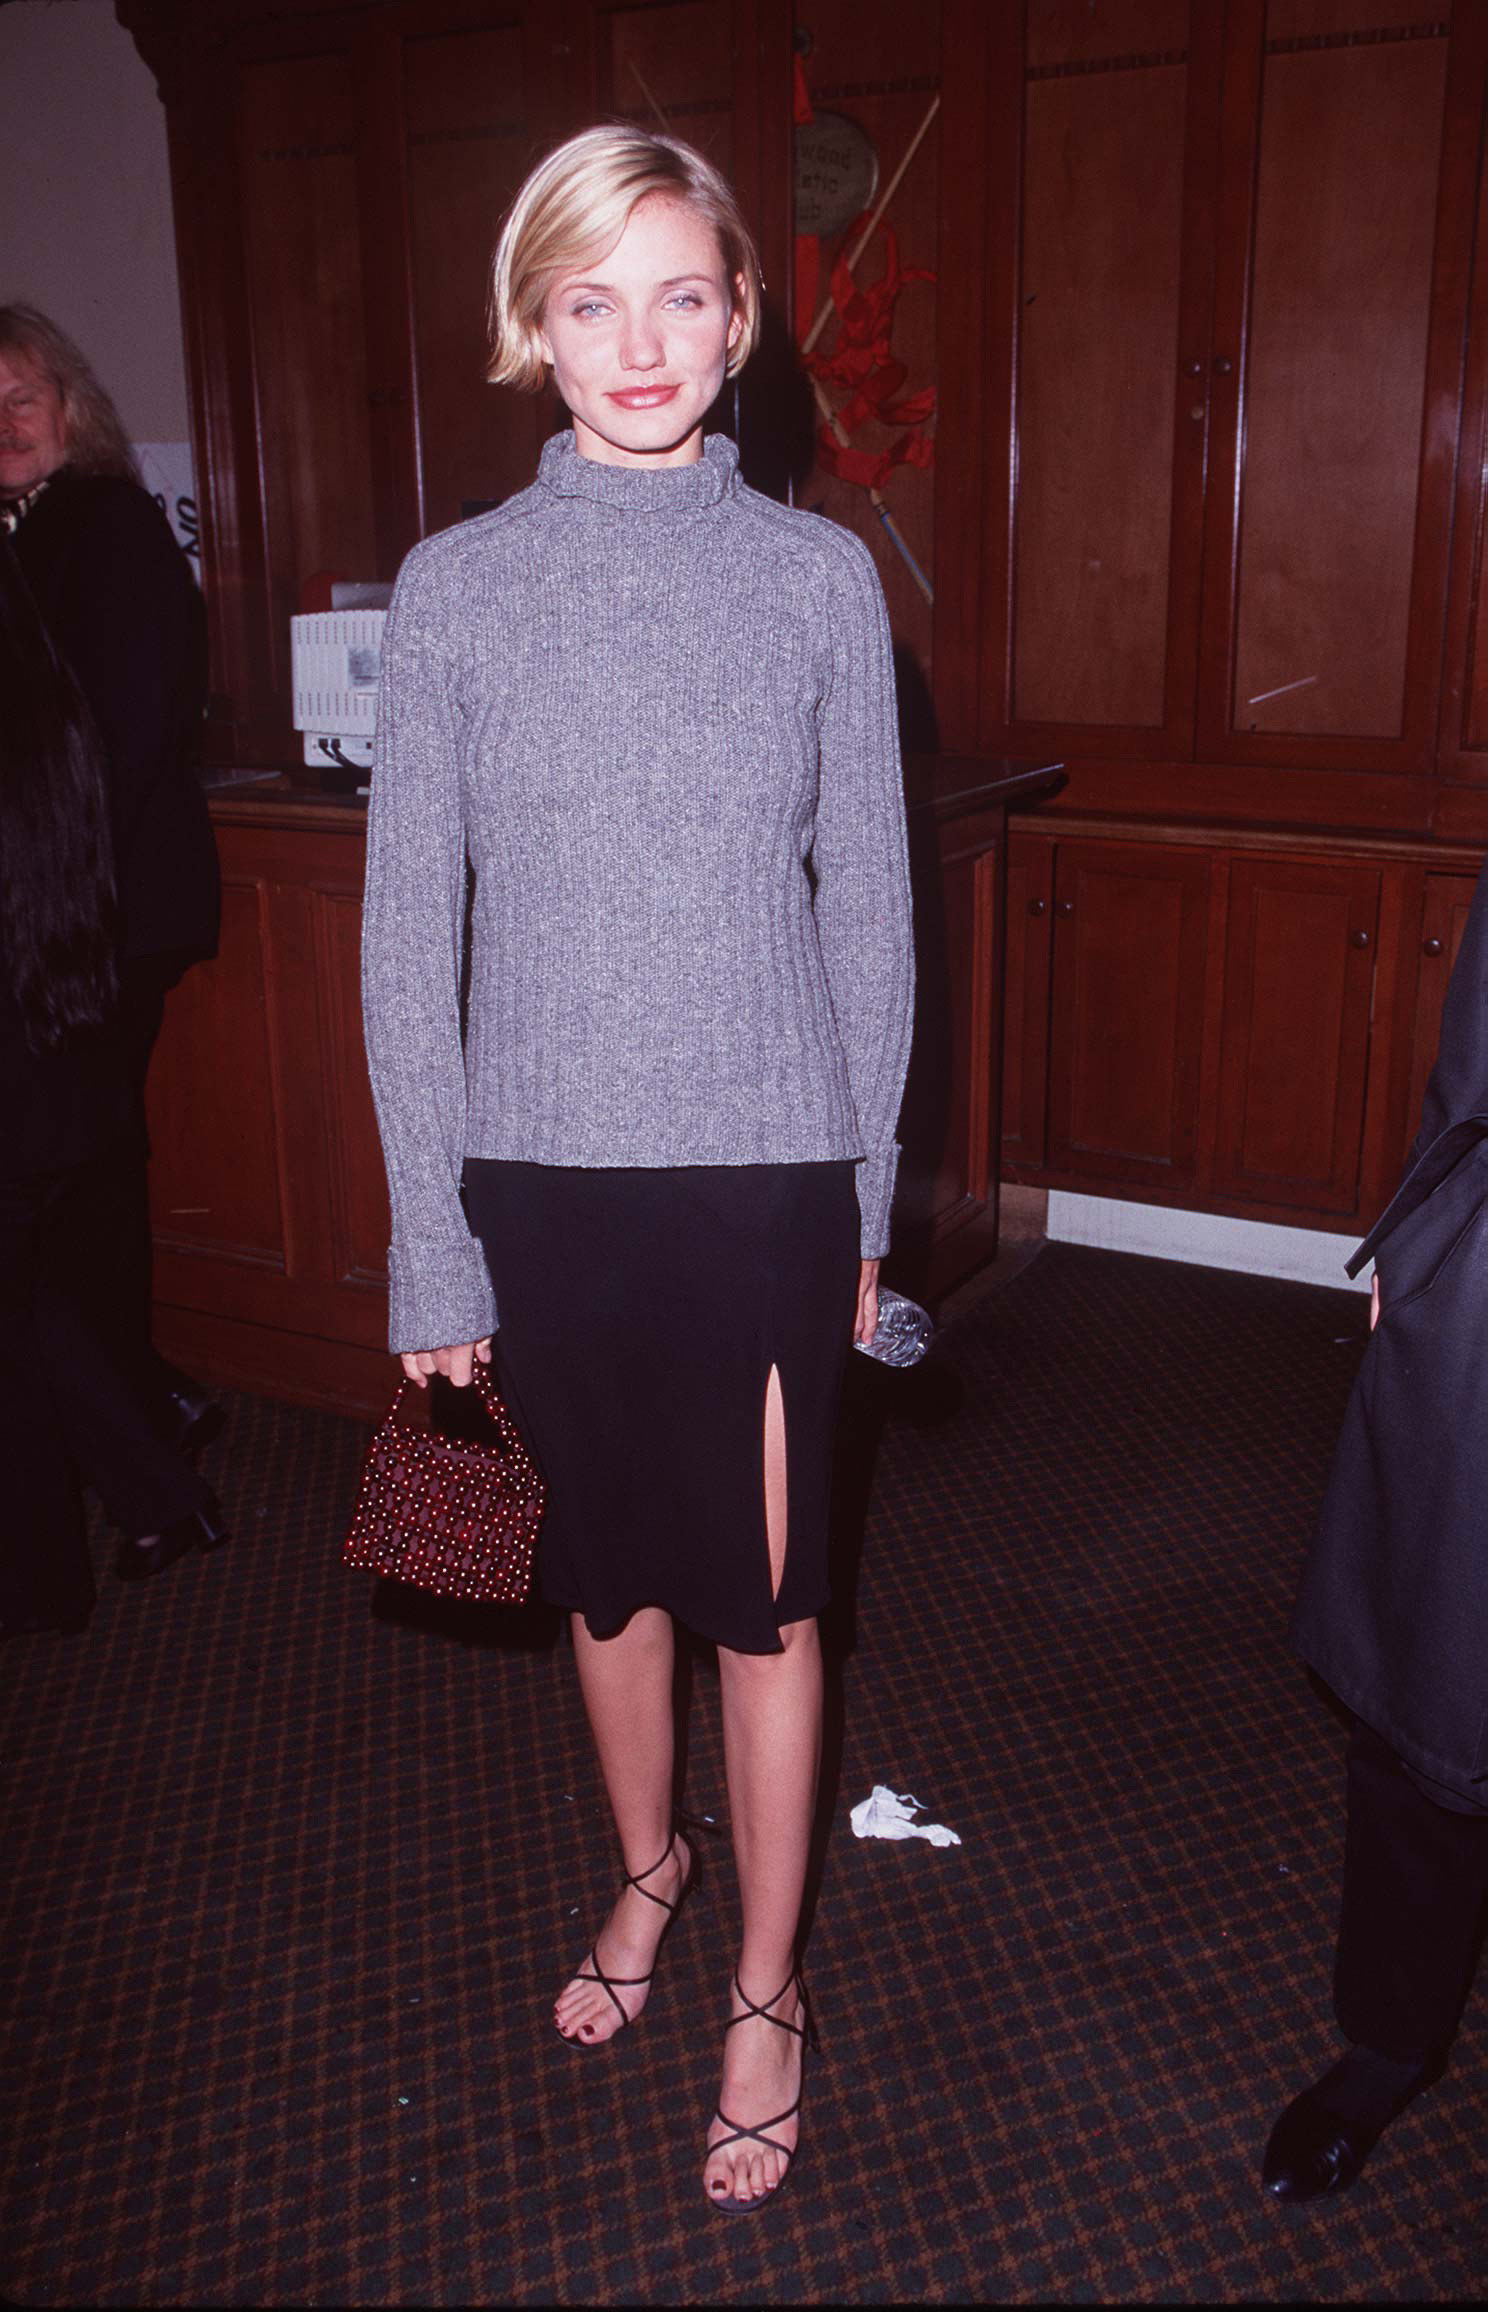 Cameron Diaz in a sweater at a movie premiere